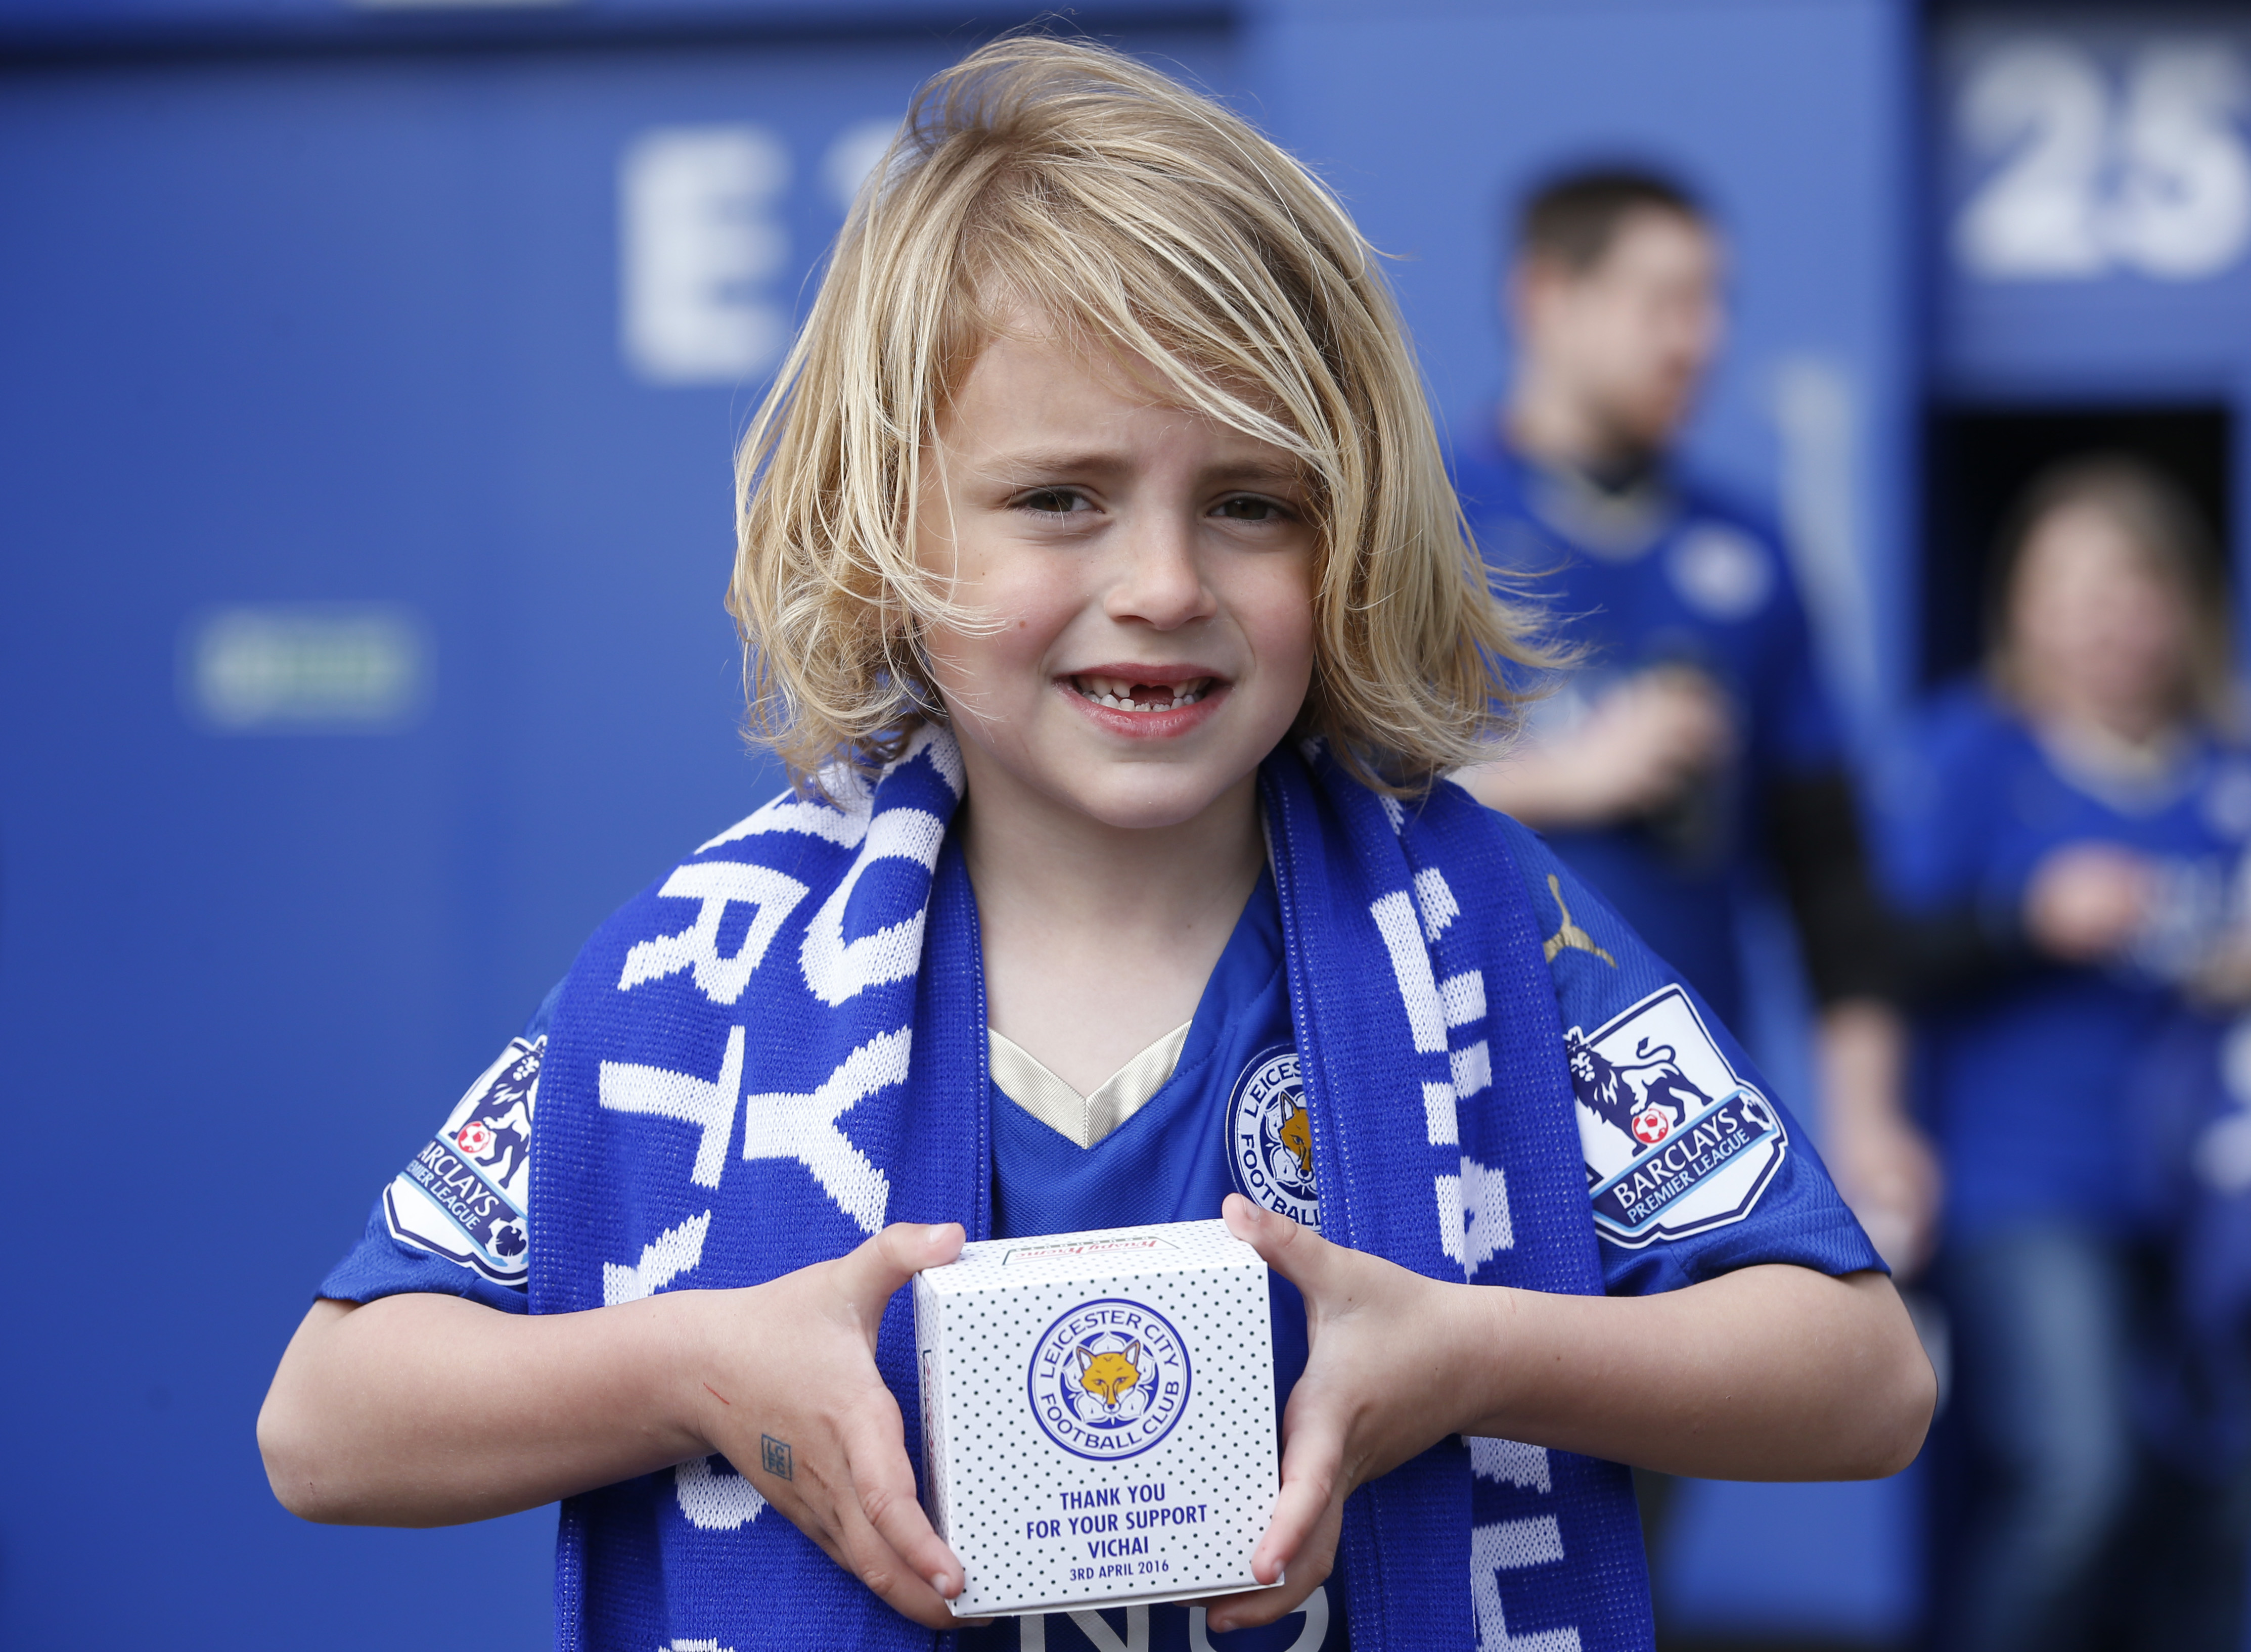 "Football Soccer - Leicester City v Southampton - Barclays Premier League - The King Power Stadium - 3/4/16 Leicester fan poses with a Leicester City doughnut outside the ground before the game Action Images via Reuters / Carl Recine Livepic EDITORIAL USE ONLY. No use with unauthorized audio, video, data, fixture lists, club/league logos or ""live"" services. Online in-match use limited to 45 images, no video emulation. No use in betting, games or single club/league/player publications. Please contact your account representative for further details. - RTSDCDJ"